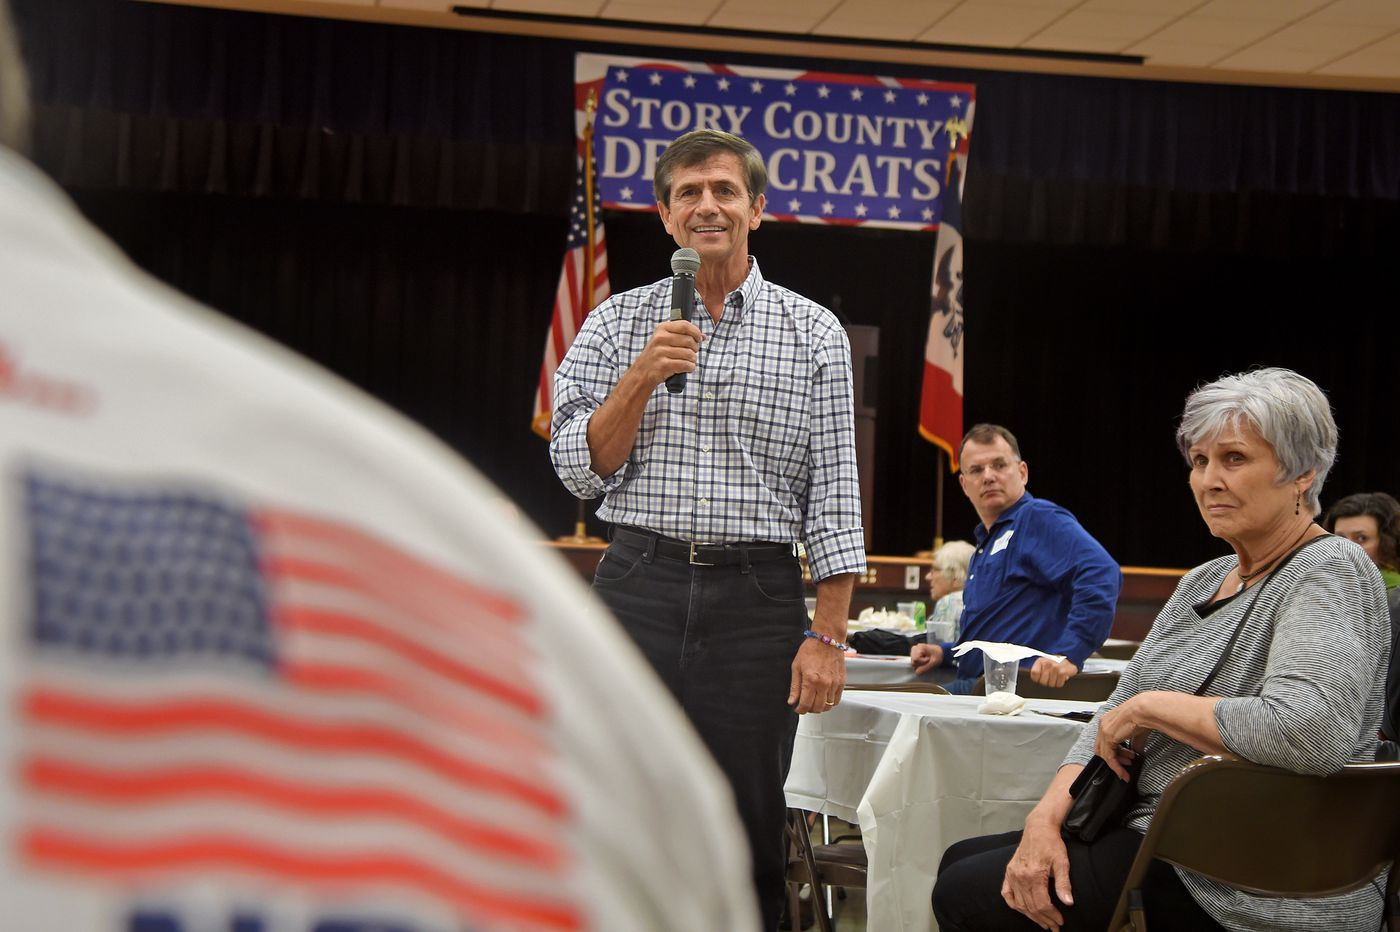 Delco's Joe Sestak Drops Presidential Bid After Late Entry Into Democratic Field